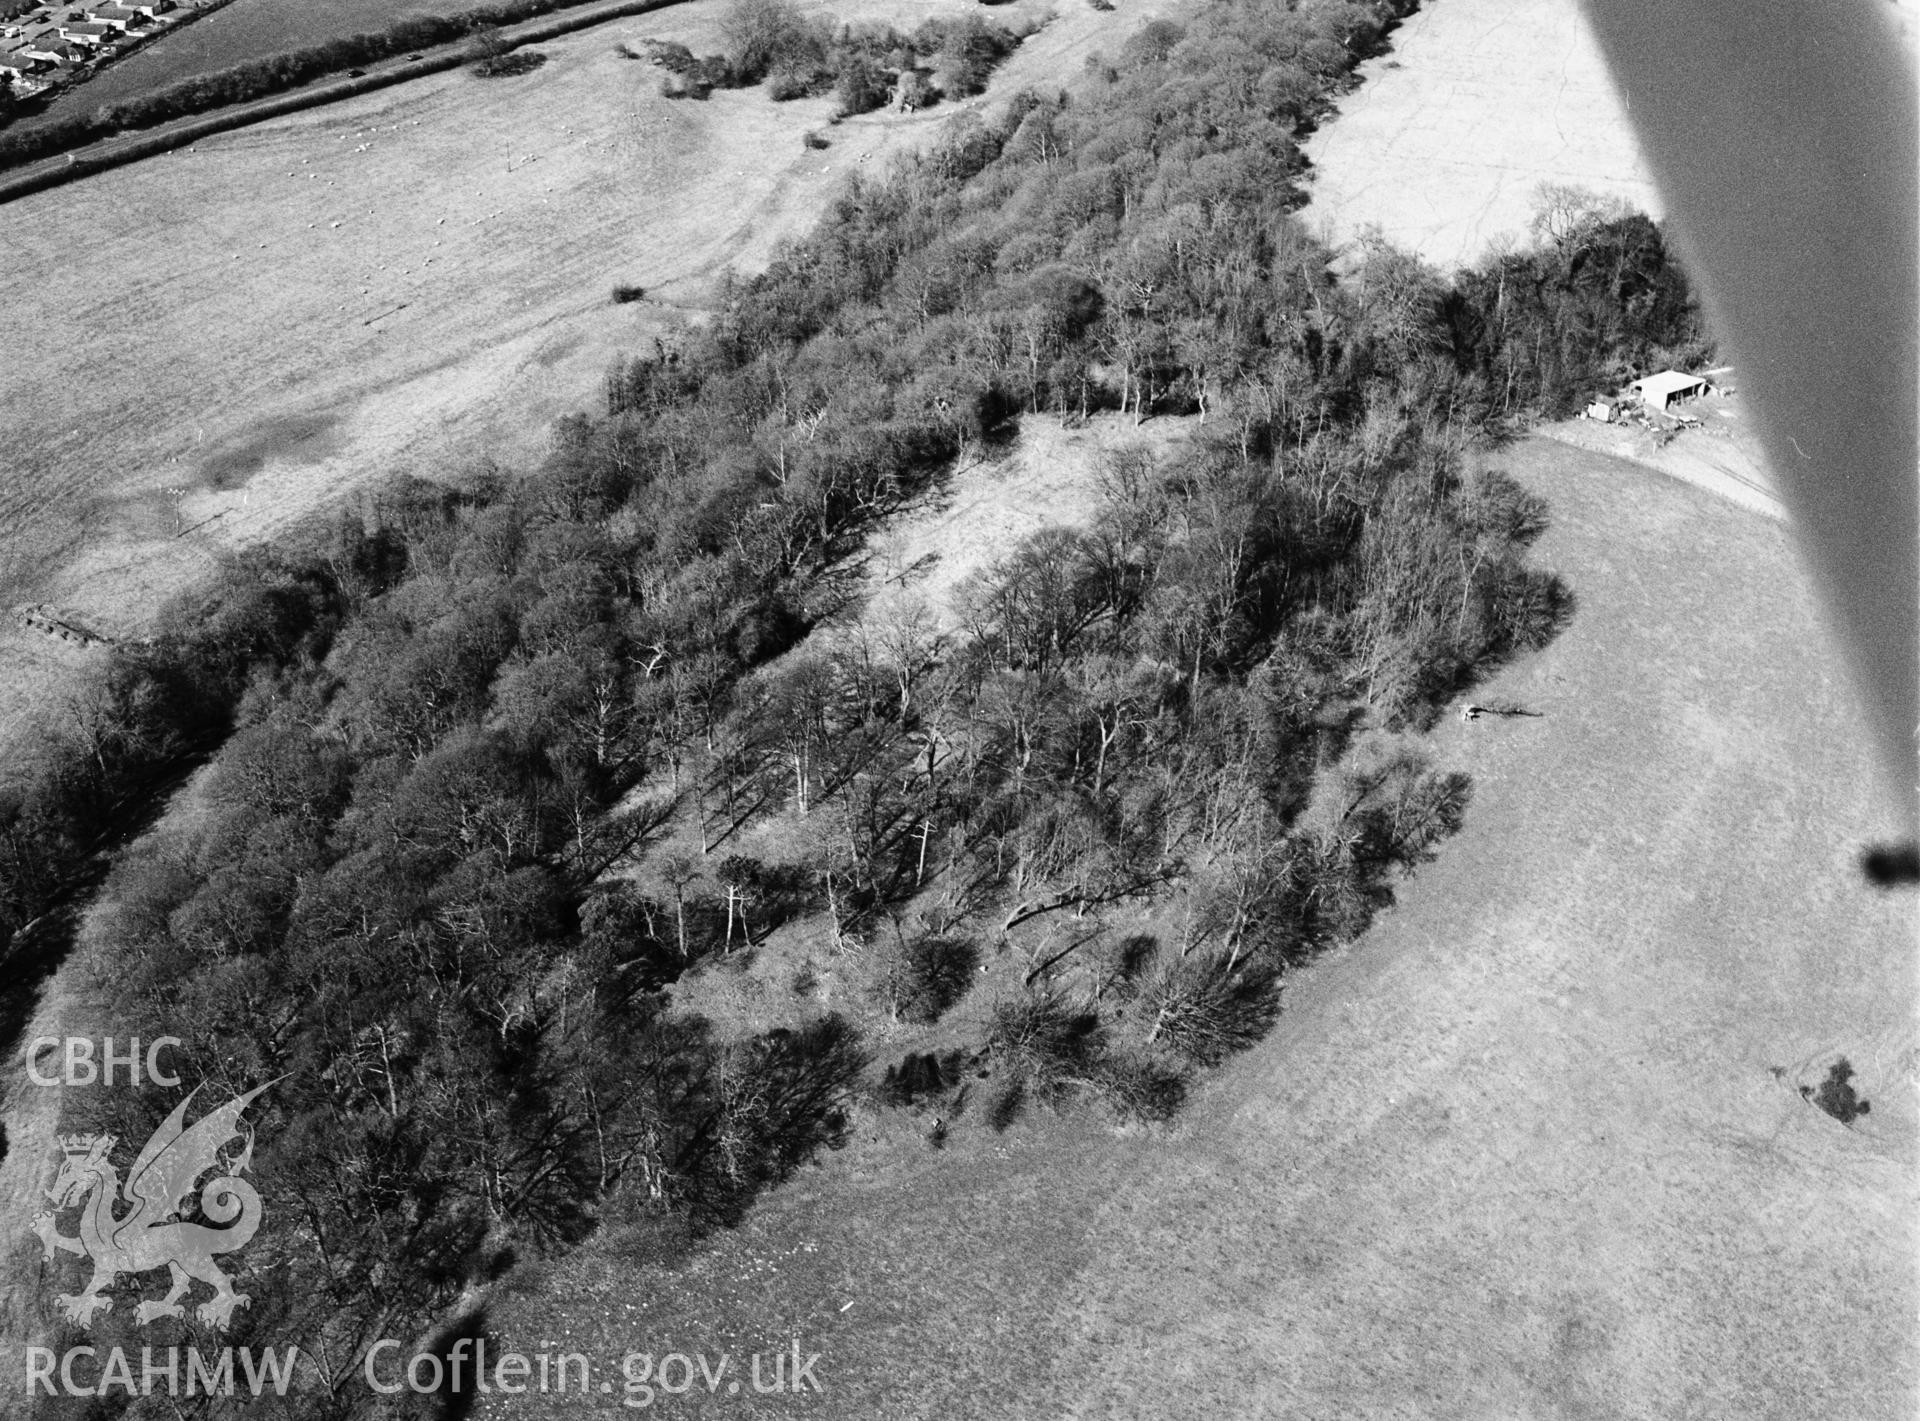 RCAHMW black and white oblique aerial photograph of Bryn Alyn Camp, hillfort. Taken by Toby Driver on 14/03/2003